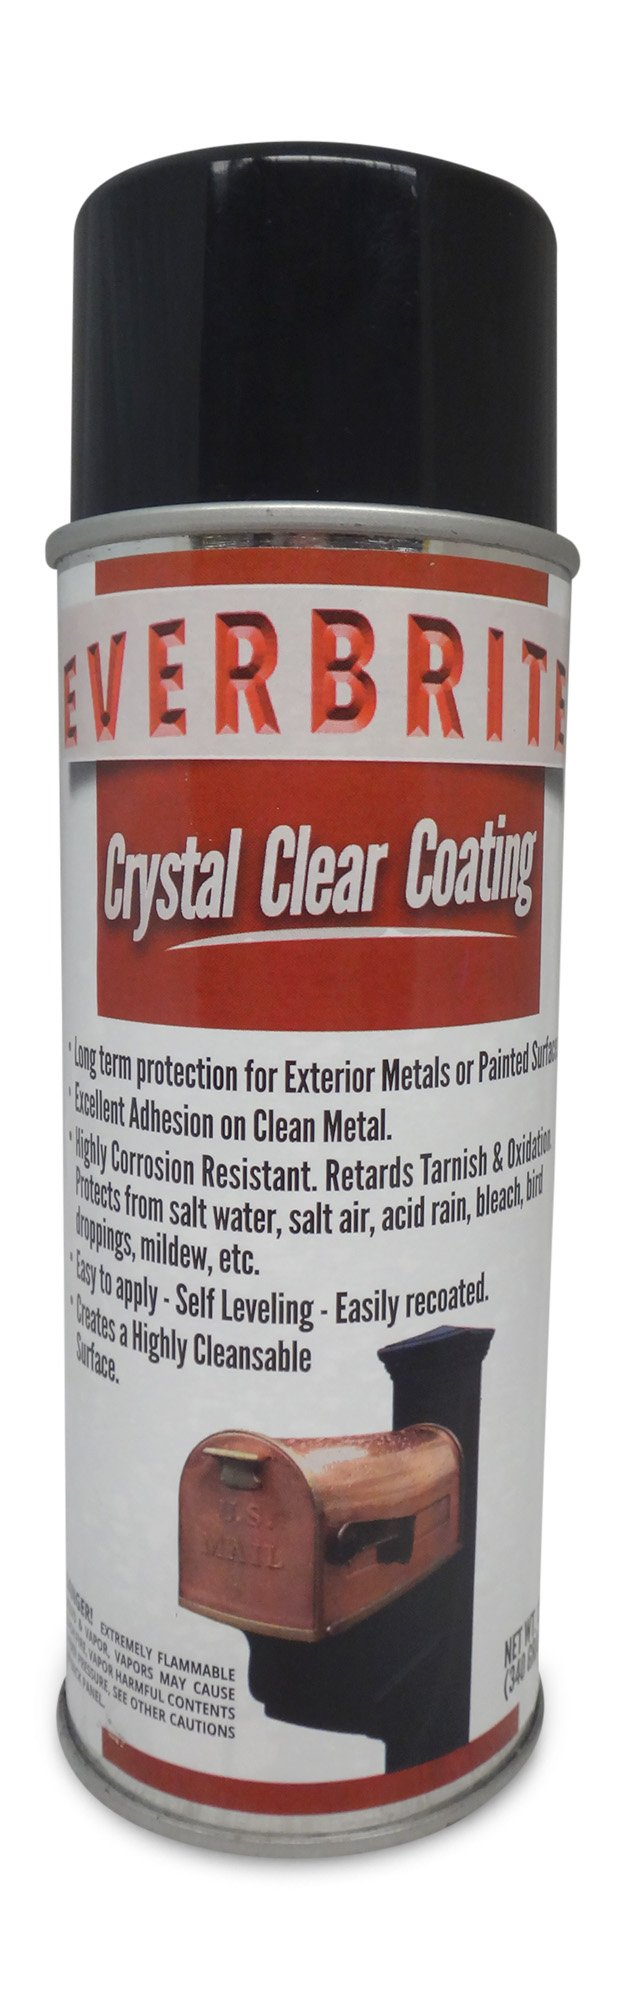 EVERBRITE 12 Oz. Aerosol Clear, Protective Coating for Metal by EverBrite (Image #1)